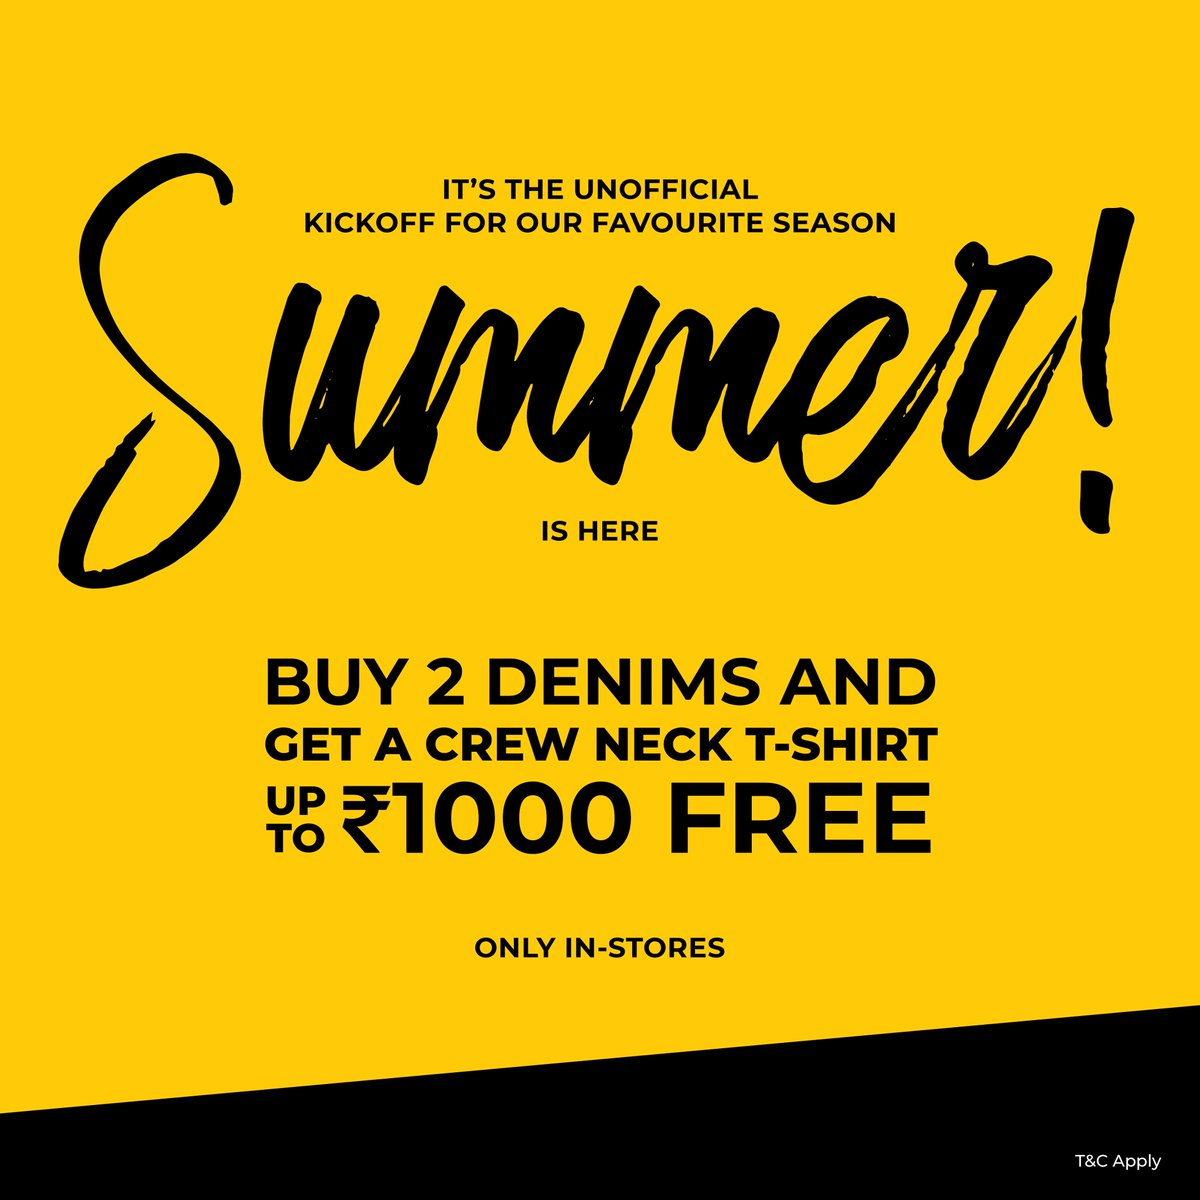 Need something to look forward to? Here's an irresistible offer for you!  Head to your nearest store now.  #beinghumanclothing #lovecareshare #beinghuman